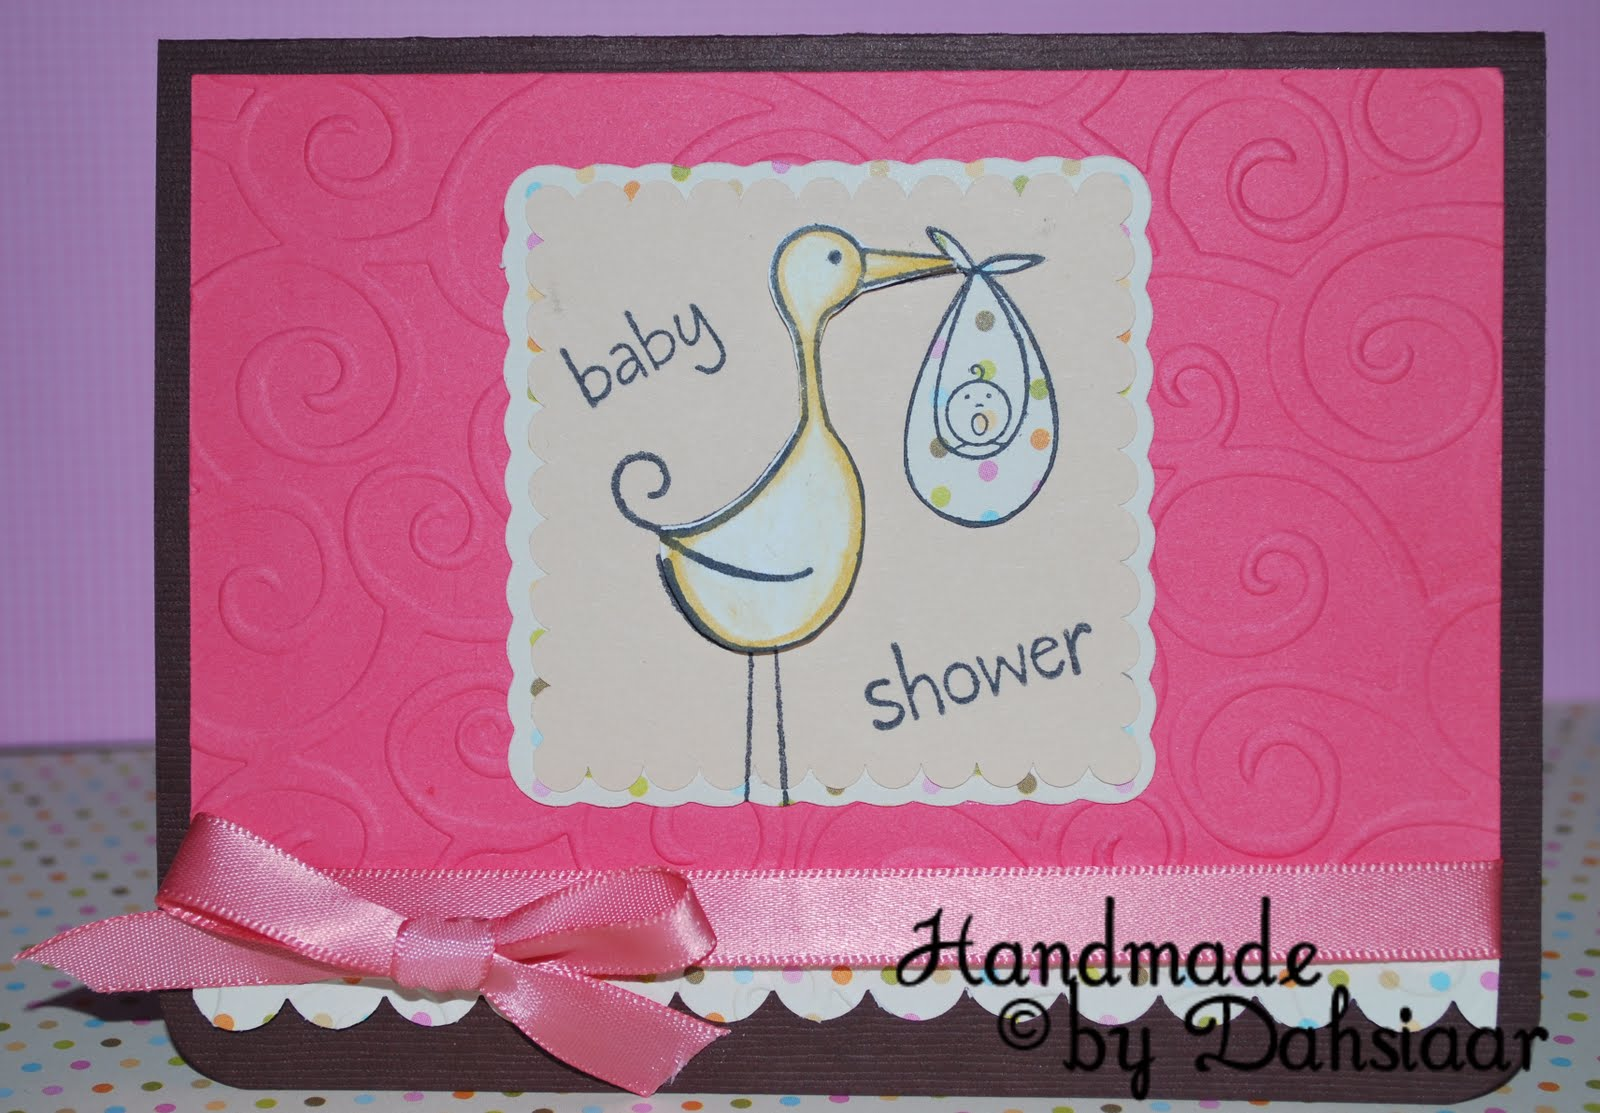 dahsiaar invitacion baby shower ideas mariposas 1600x1113